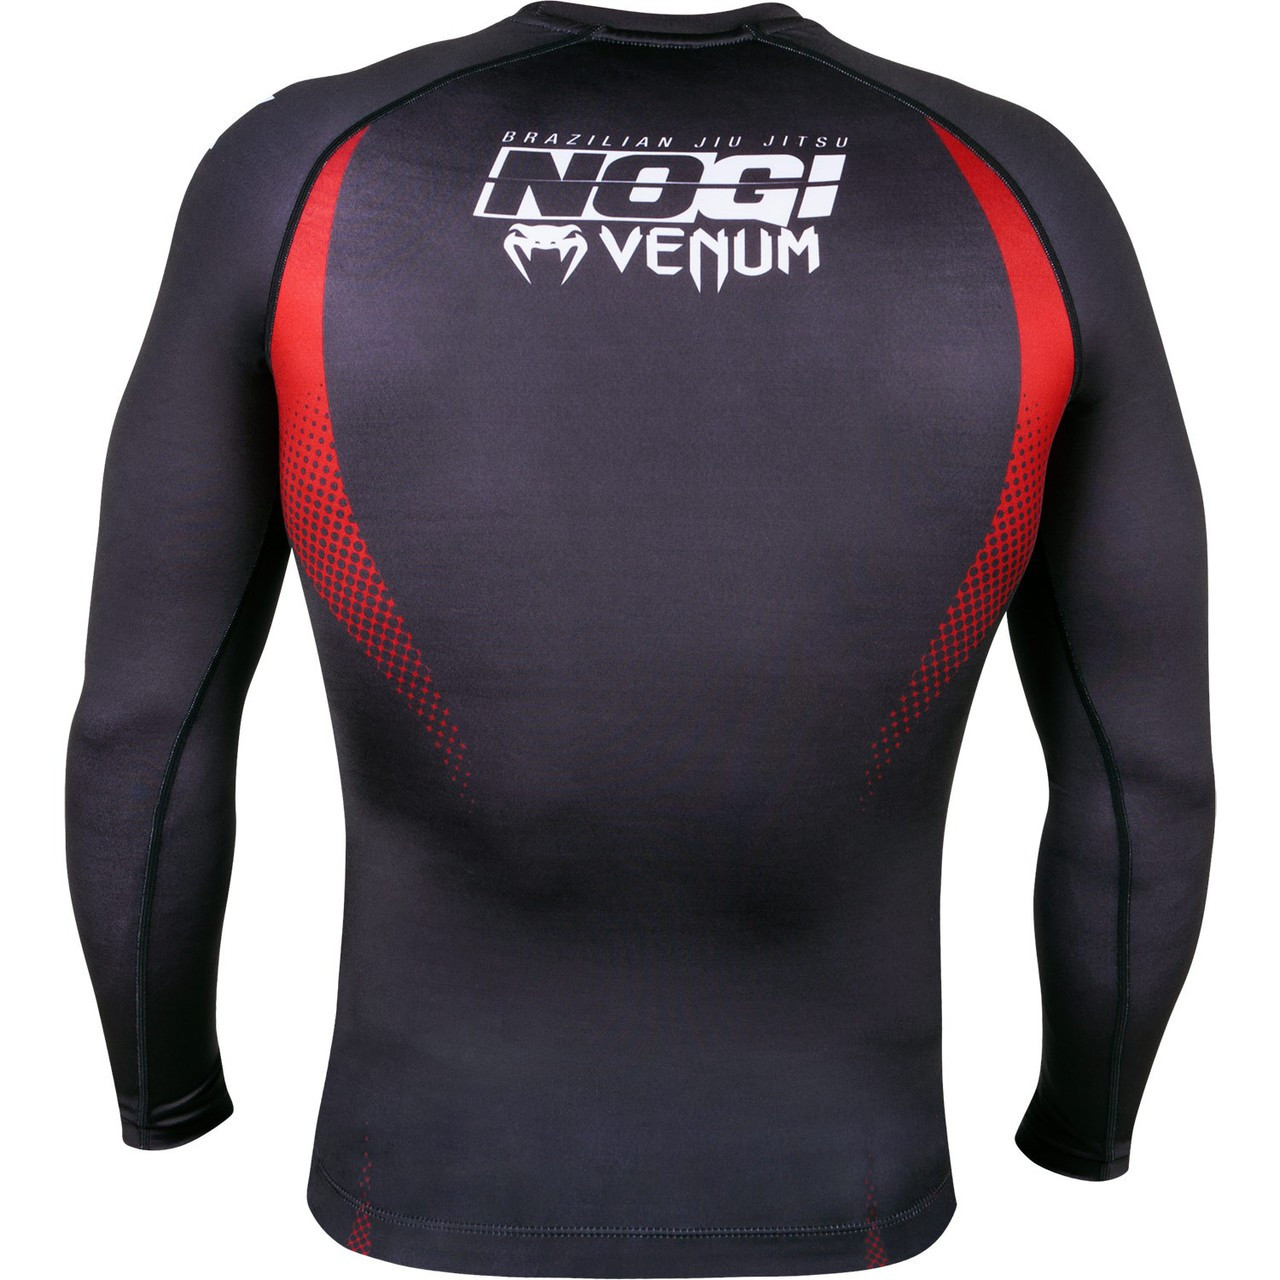 Venum No Gi Ranked Rashguard Long Sleeve Rashguard.  The Jiu Jitsu Shop.  www.thejiujitsushop.com   Enjoy free shipping storewide